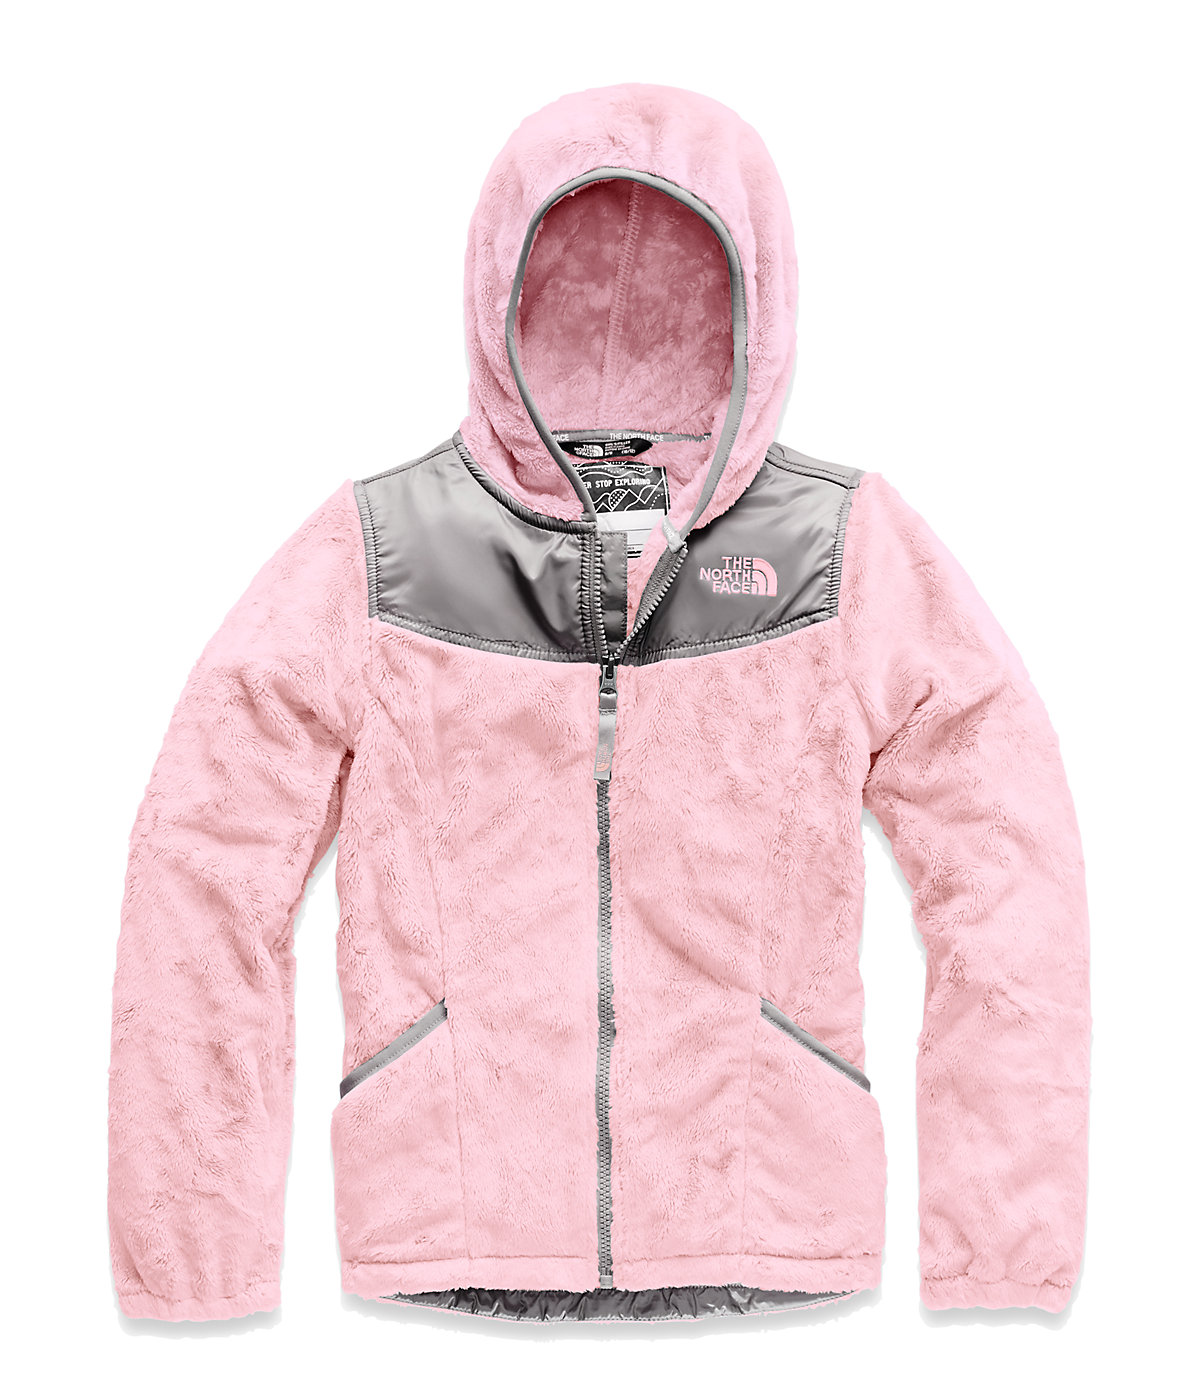 Girls Oso Hoodie The North Face North Face Girls North Face Oso Girls North Face Jacket [ 1396 x 1200 Pixel ]